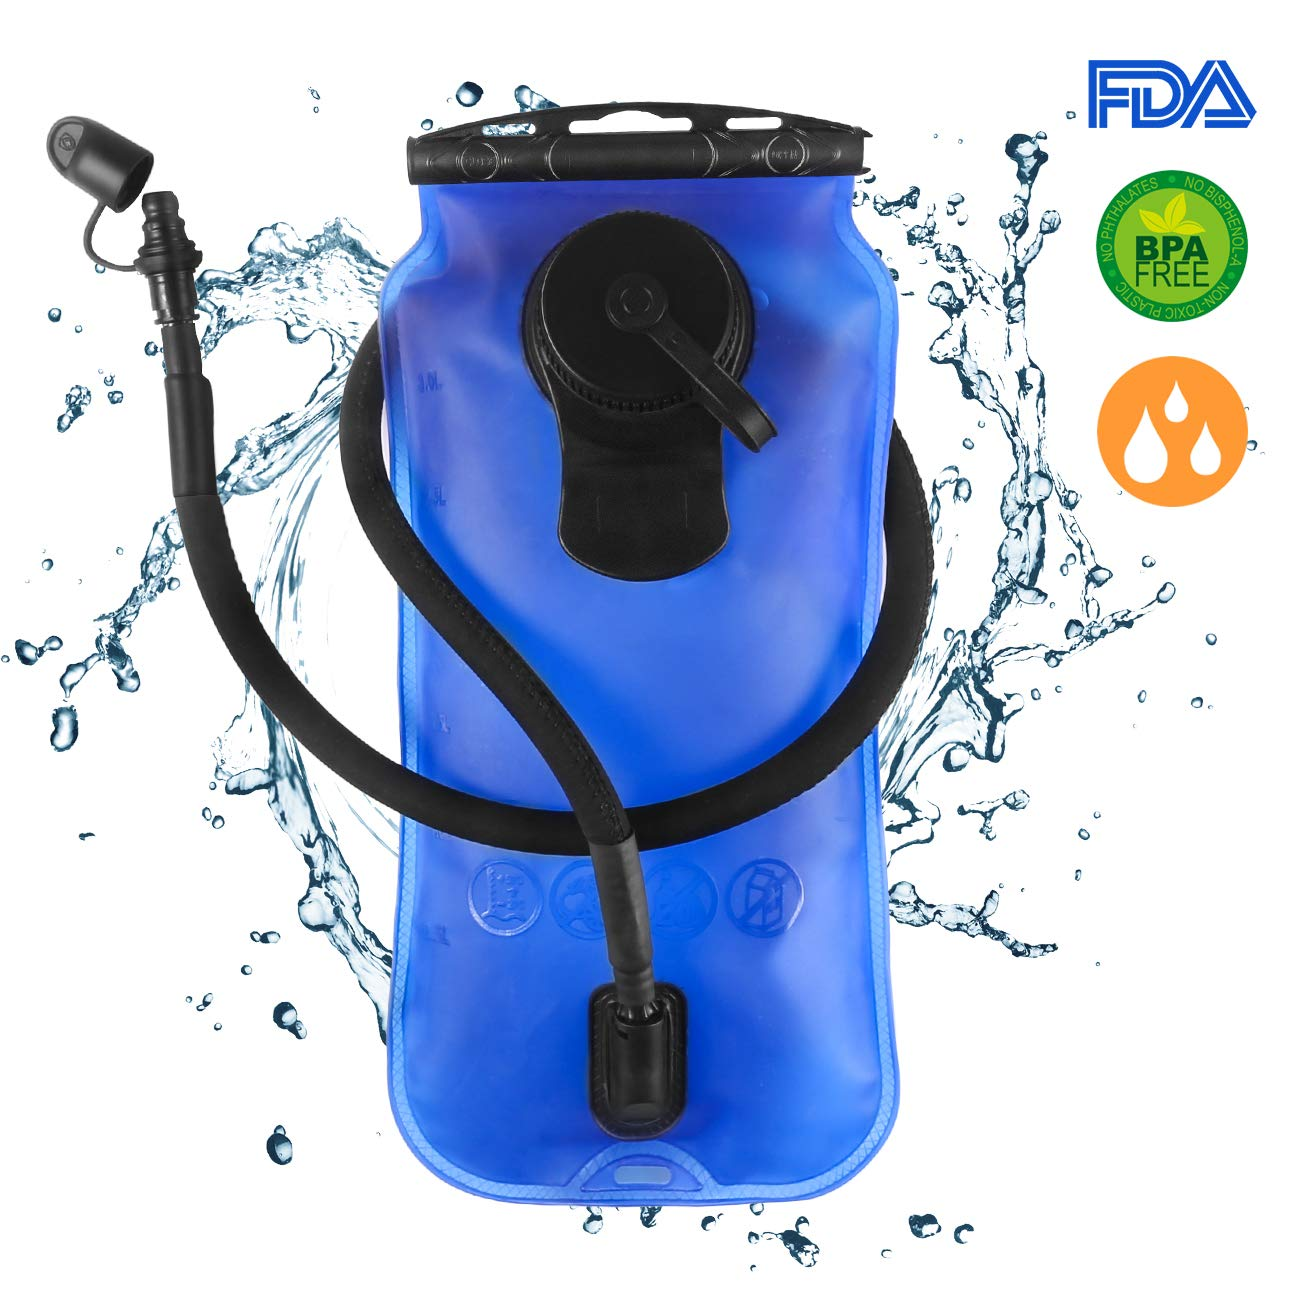 DAPRIL Hydration Bladder, Leak Proof Water Reservoir, Military Water Storage Bladder Bag, BPA Free Hydration Pack Replacement for Hiking Biking Climbing Cycling Running (3L Blue) (Advanced)